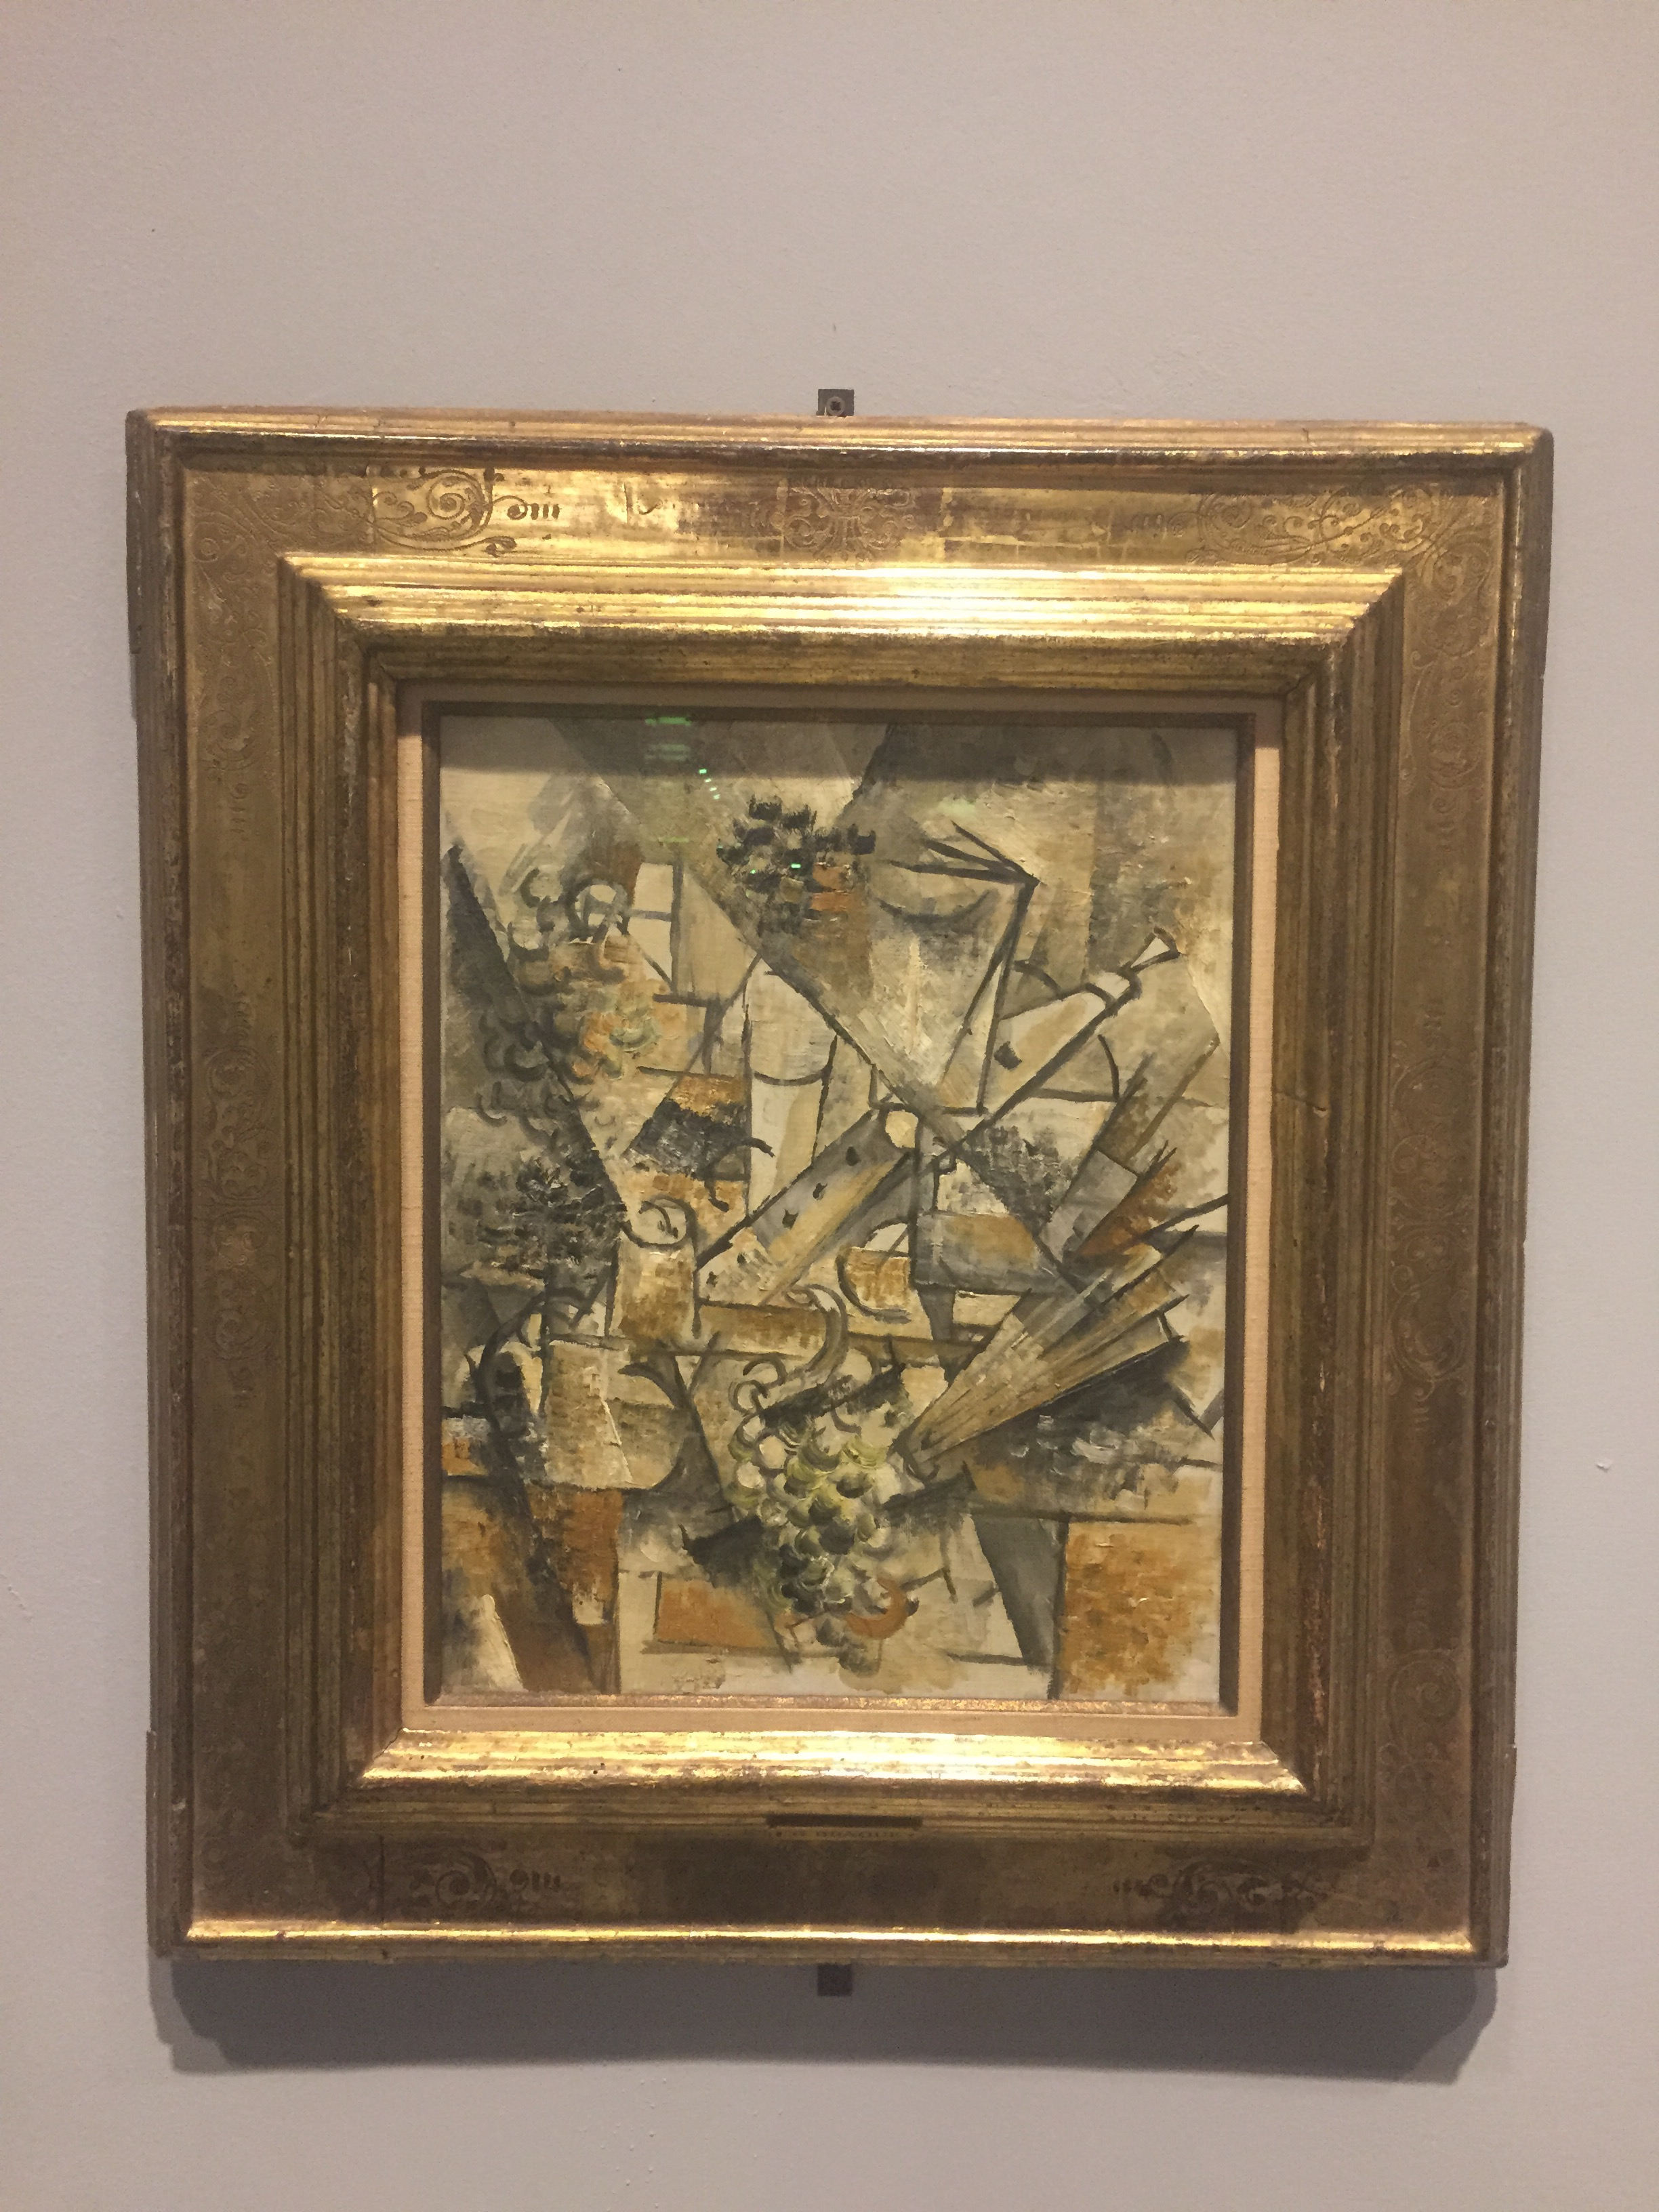 the features of italian art in the early 20th century Video: relationship between politics & art in the early 20th-century state the characteristics of the dada and italian futurism movements describe the craft of collage characteristics & types of early 20th-century art 7:25.